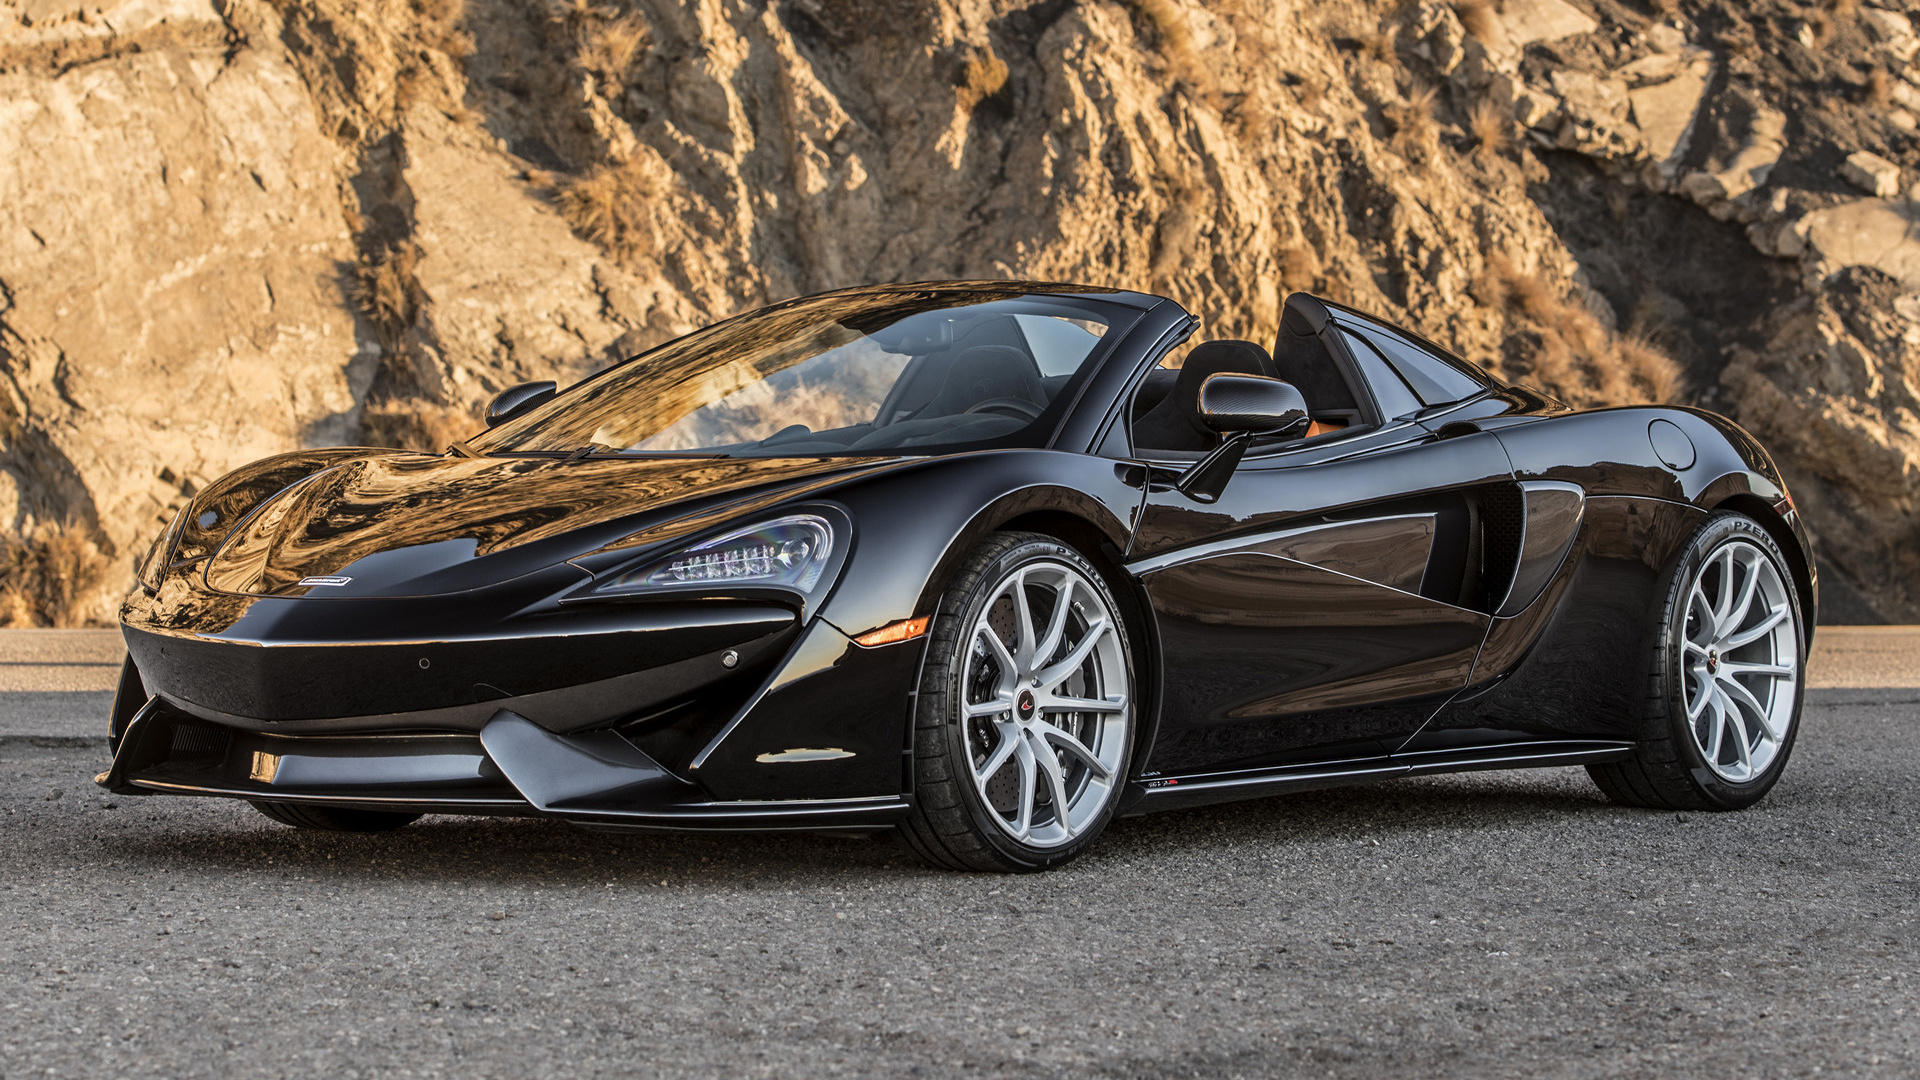 Track Car Wallpaper 2018 Mclaren 570s Spider Us Wallpapers And Hd Images